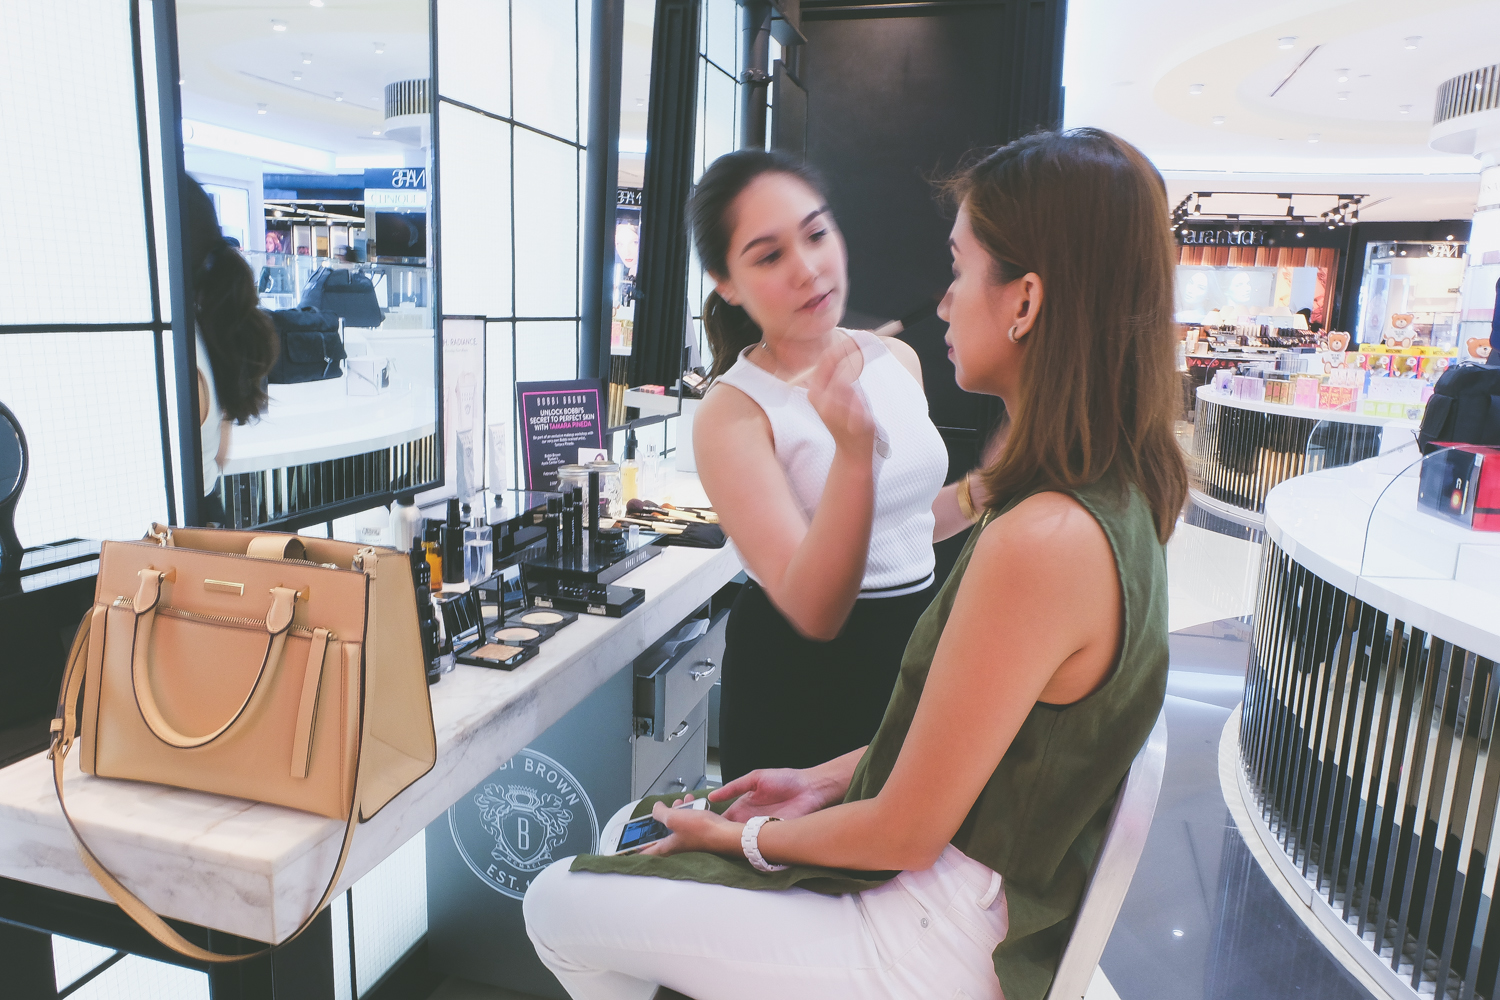 Cebu Beauty Blogger, Cebu Fashion Blogger, Cebu Bloggers, Beauty, Philippines, Blog, Bobbi Brown Extra Treatment Lotion, Reviews, Beauty Reviews, Asian, Filipina Blogger, Beauty Regimen, Nightly beauty ritual, Toni Pino-Oca, Cebu Beauty Blogs, Tamara Pineda